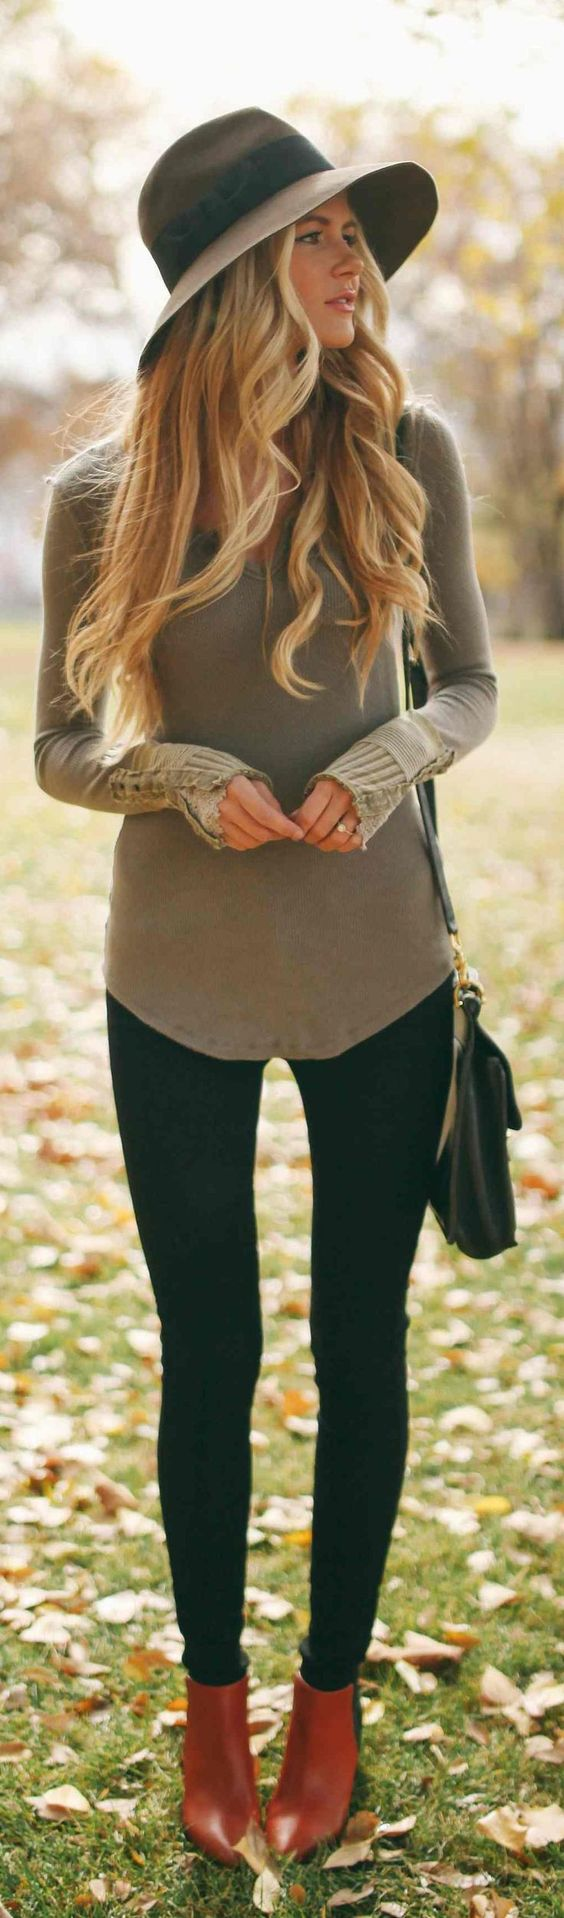 Casual Women's Autumn Outfit